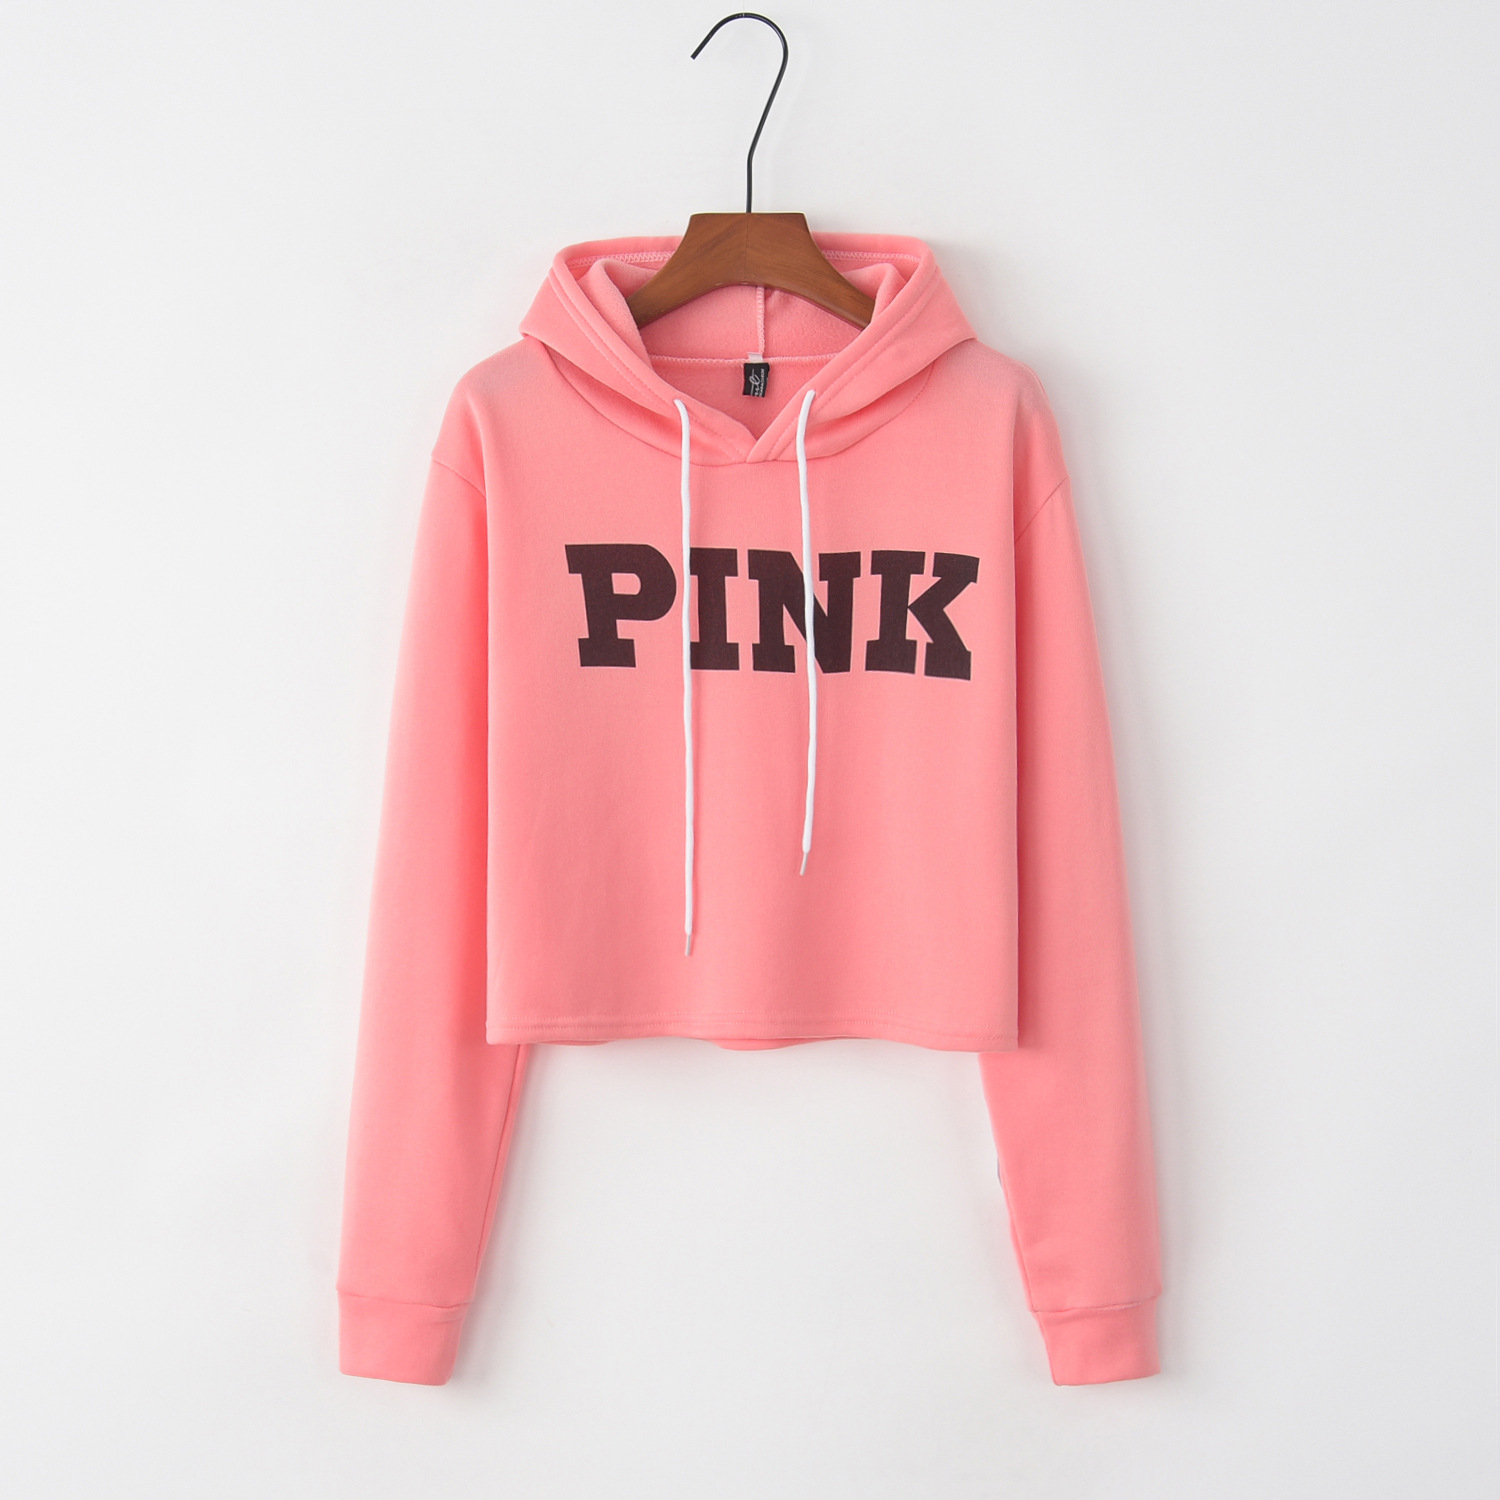 2019 Europe And America Fashion Women Sexy Short Paragraph Exposed Umbilical Hole Design Hooded Pink Letter Print Hoodies Womens